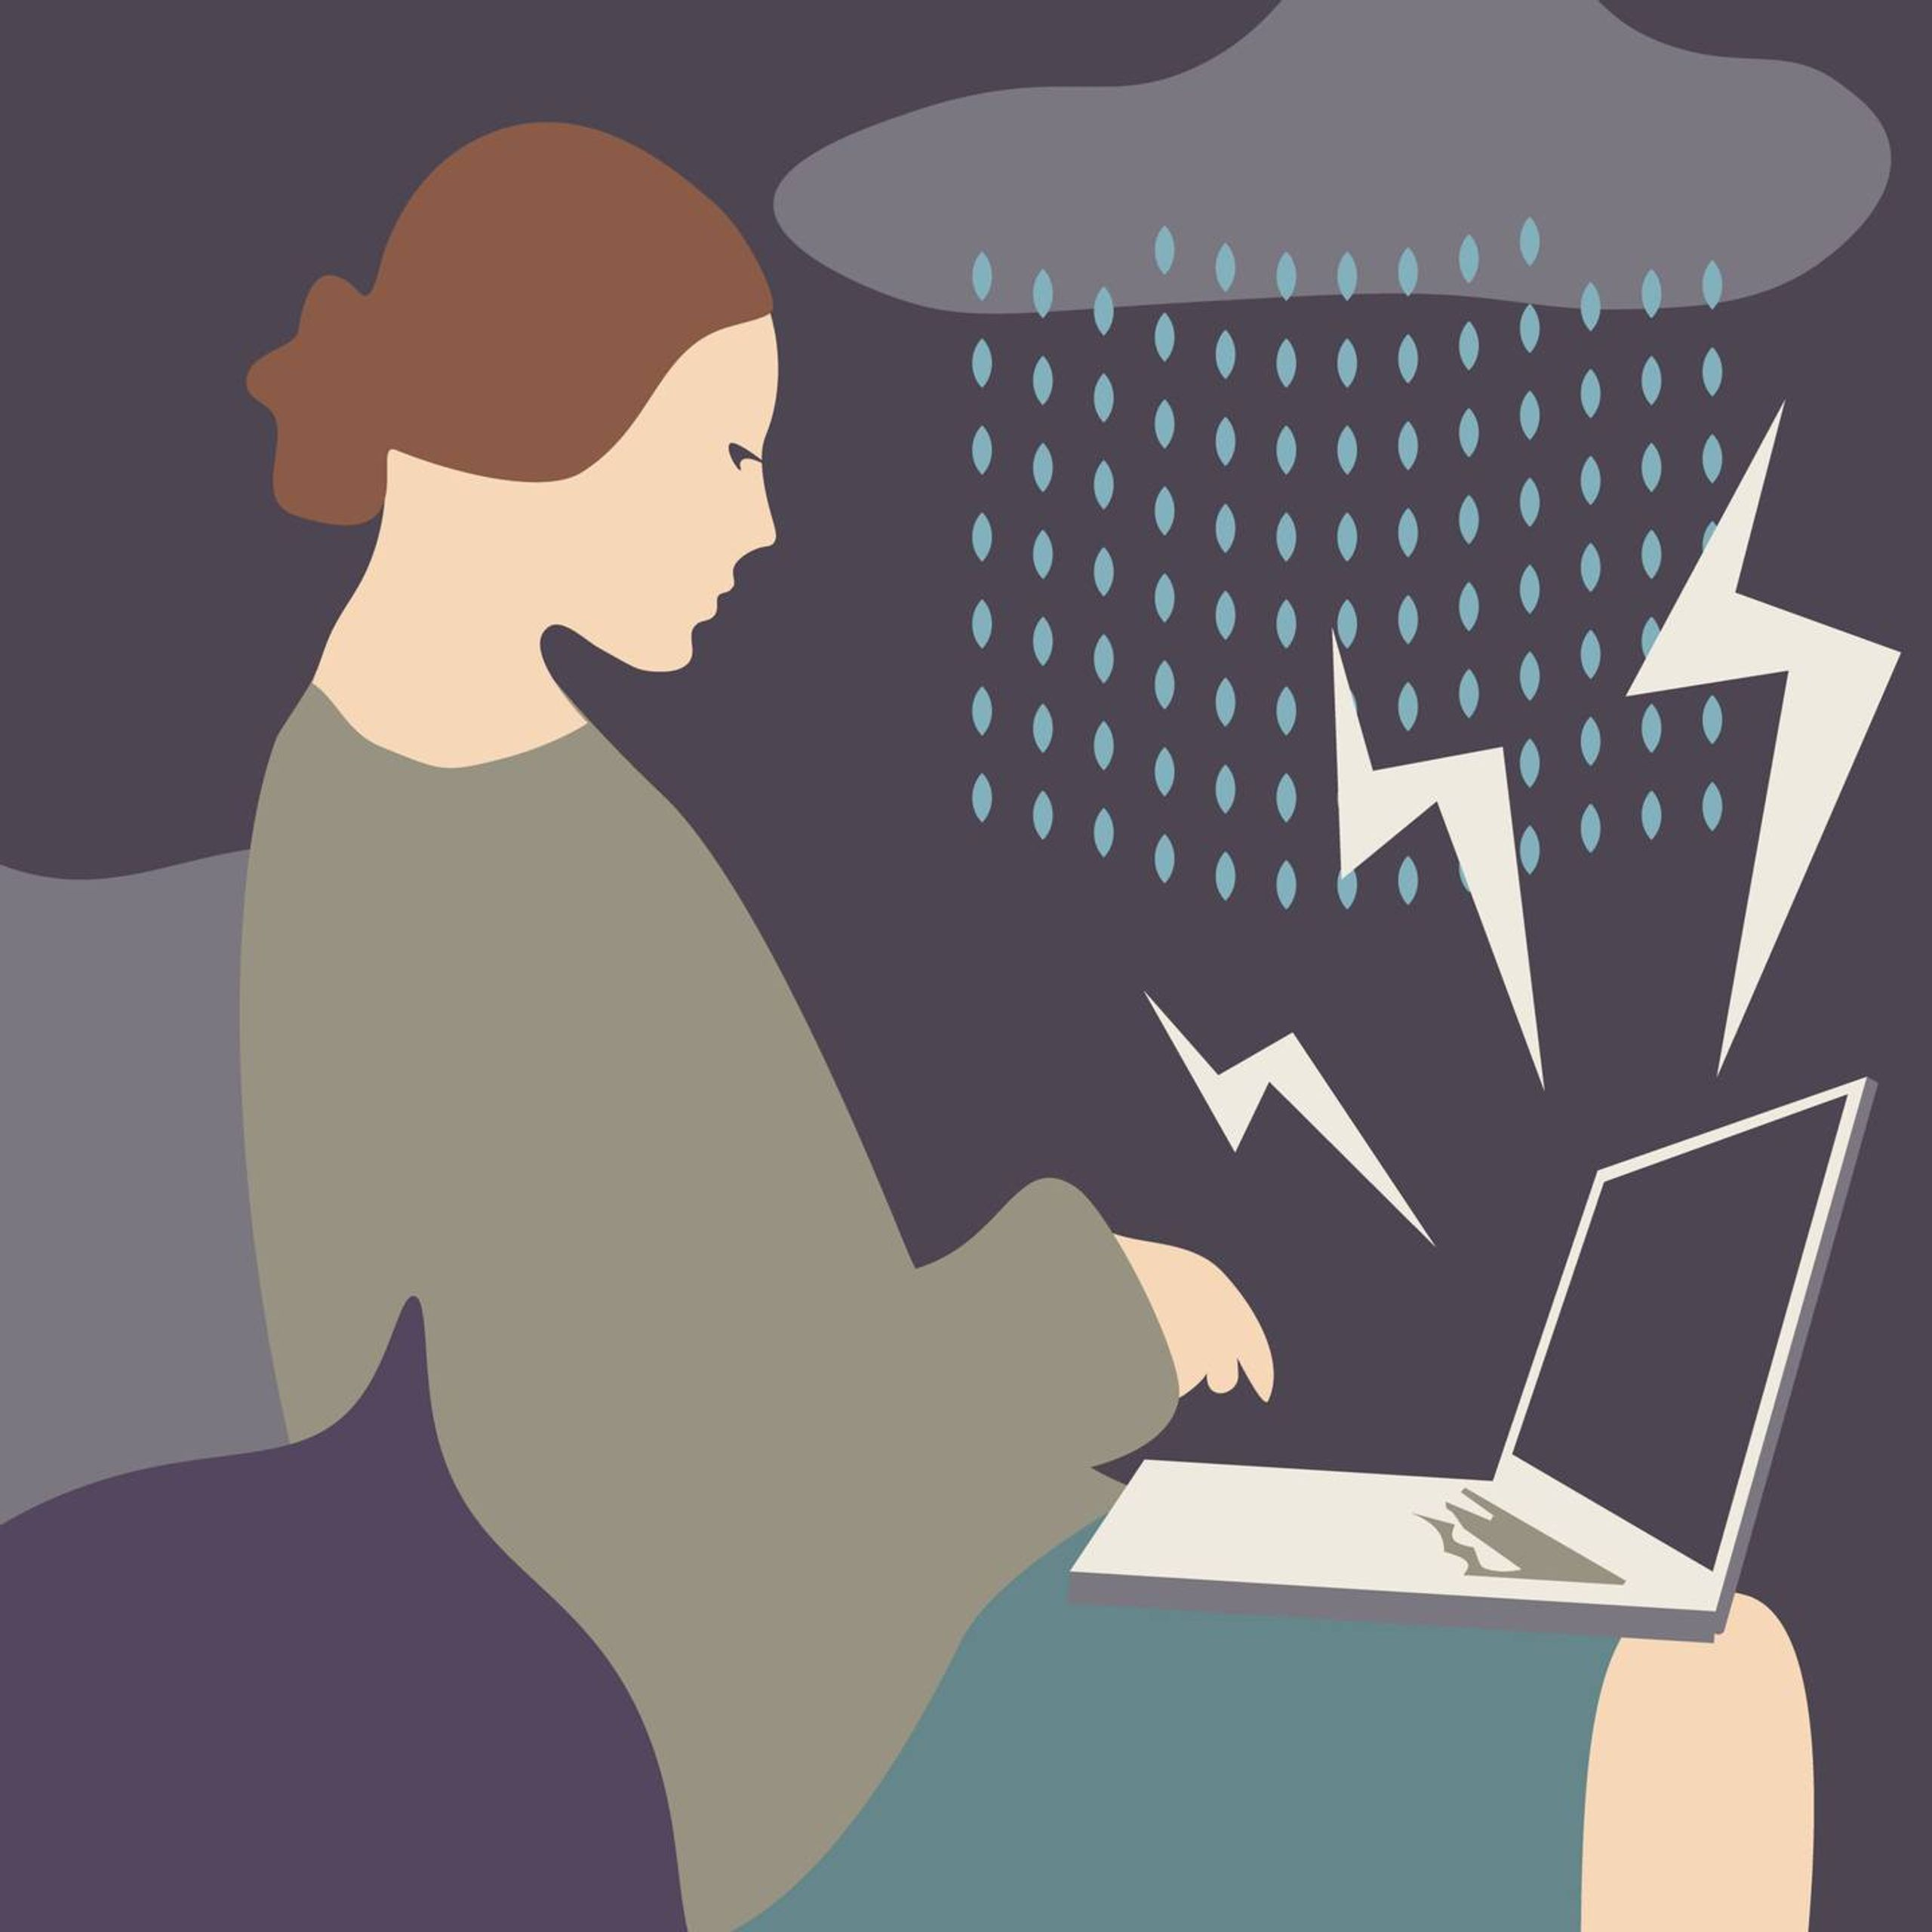 Illustration of woman on laptop with rain and lightning striking the laptop. REWIRE PBS our future media consumption, Rewire, media diet